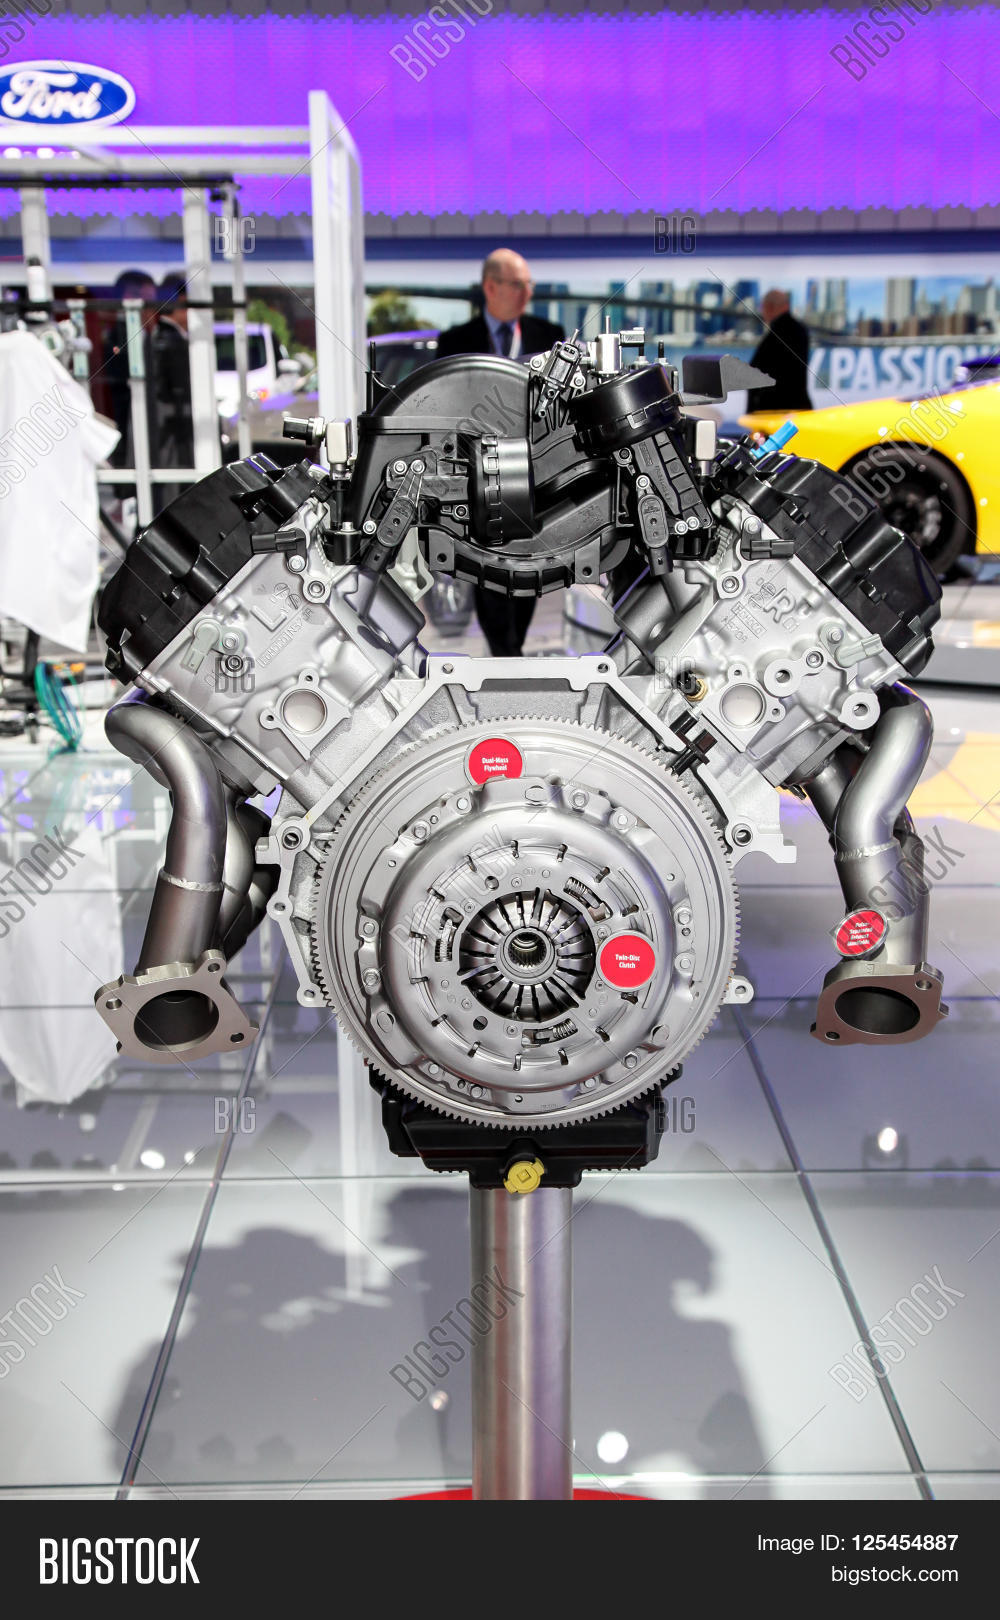 NEW YORK  MARCH 23 A Ford engine GT 350 52L V8 shown at the